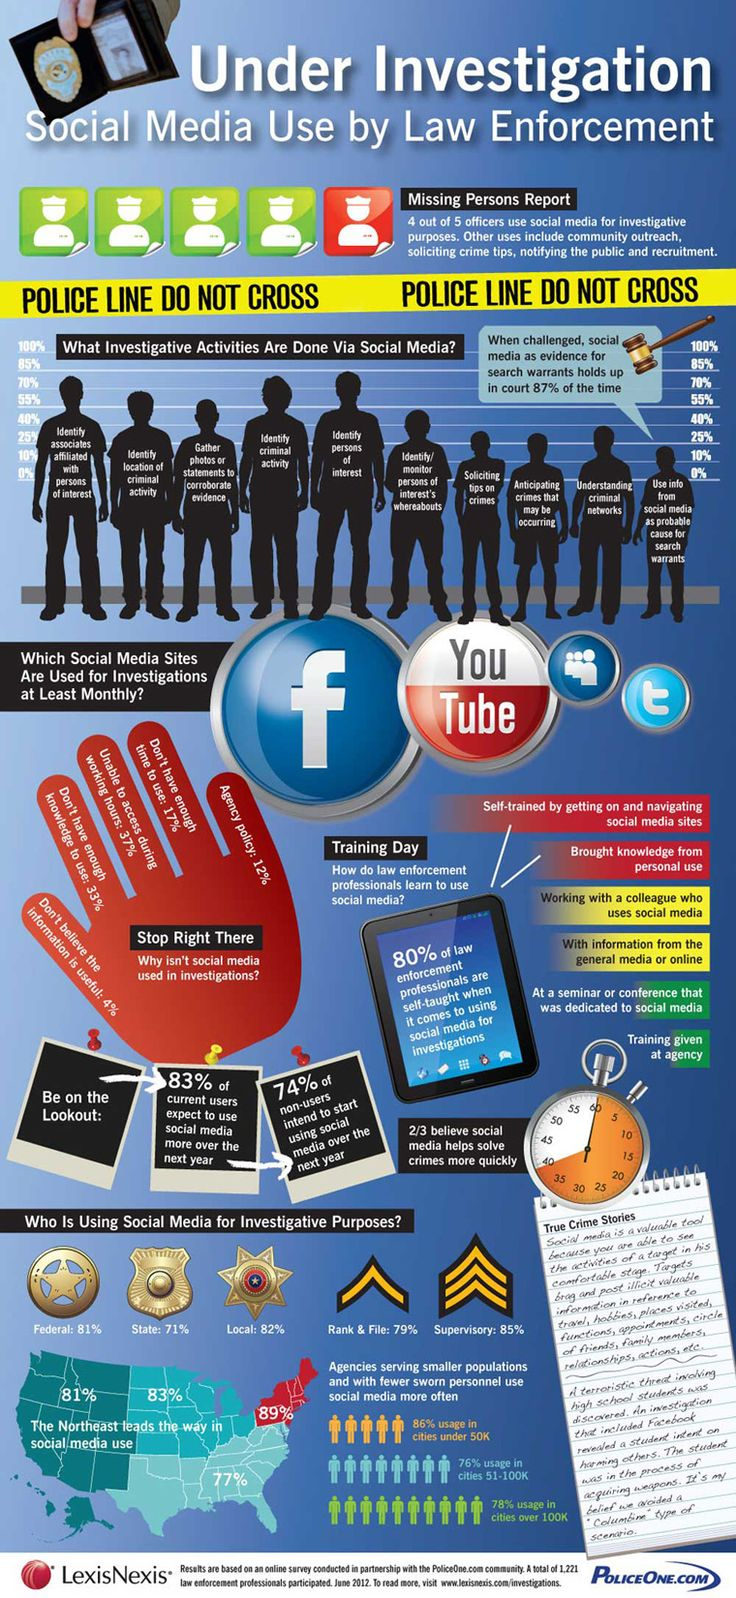 At Owens Investigations we check all of the social media sites as part of our investigations.